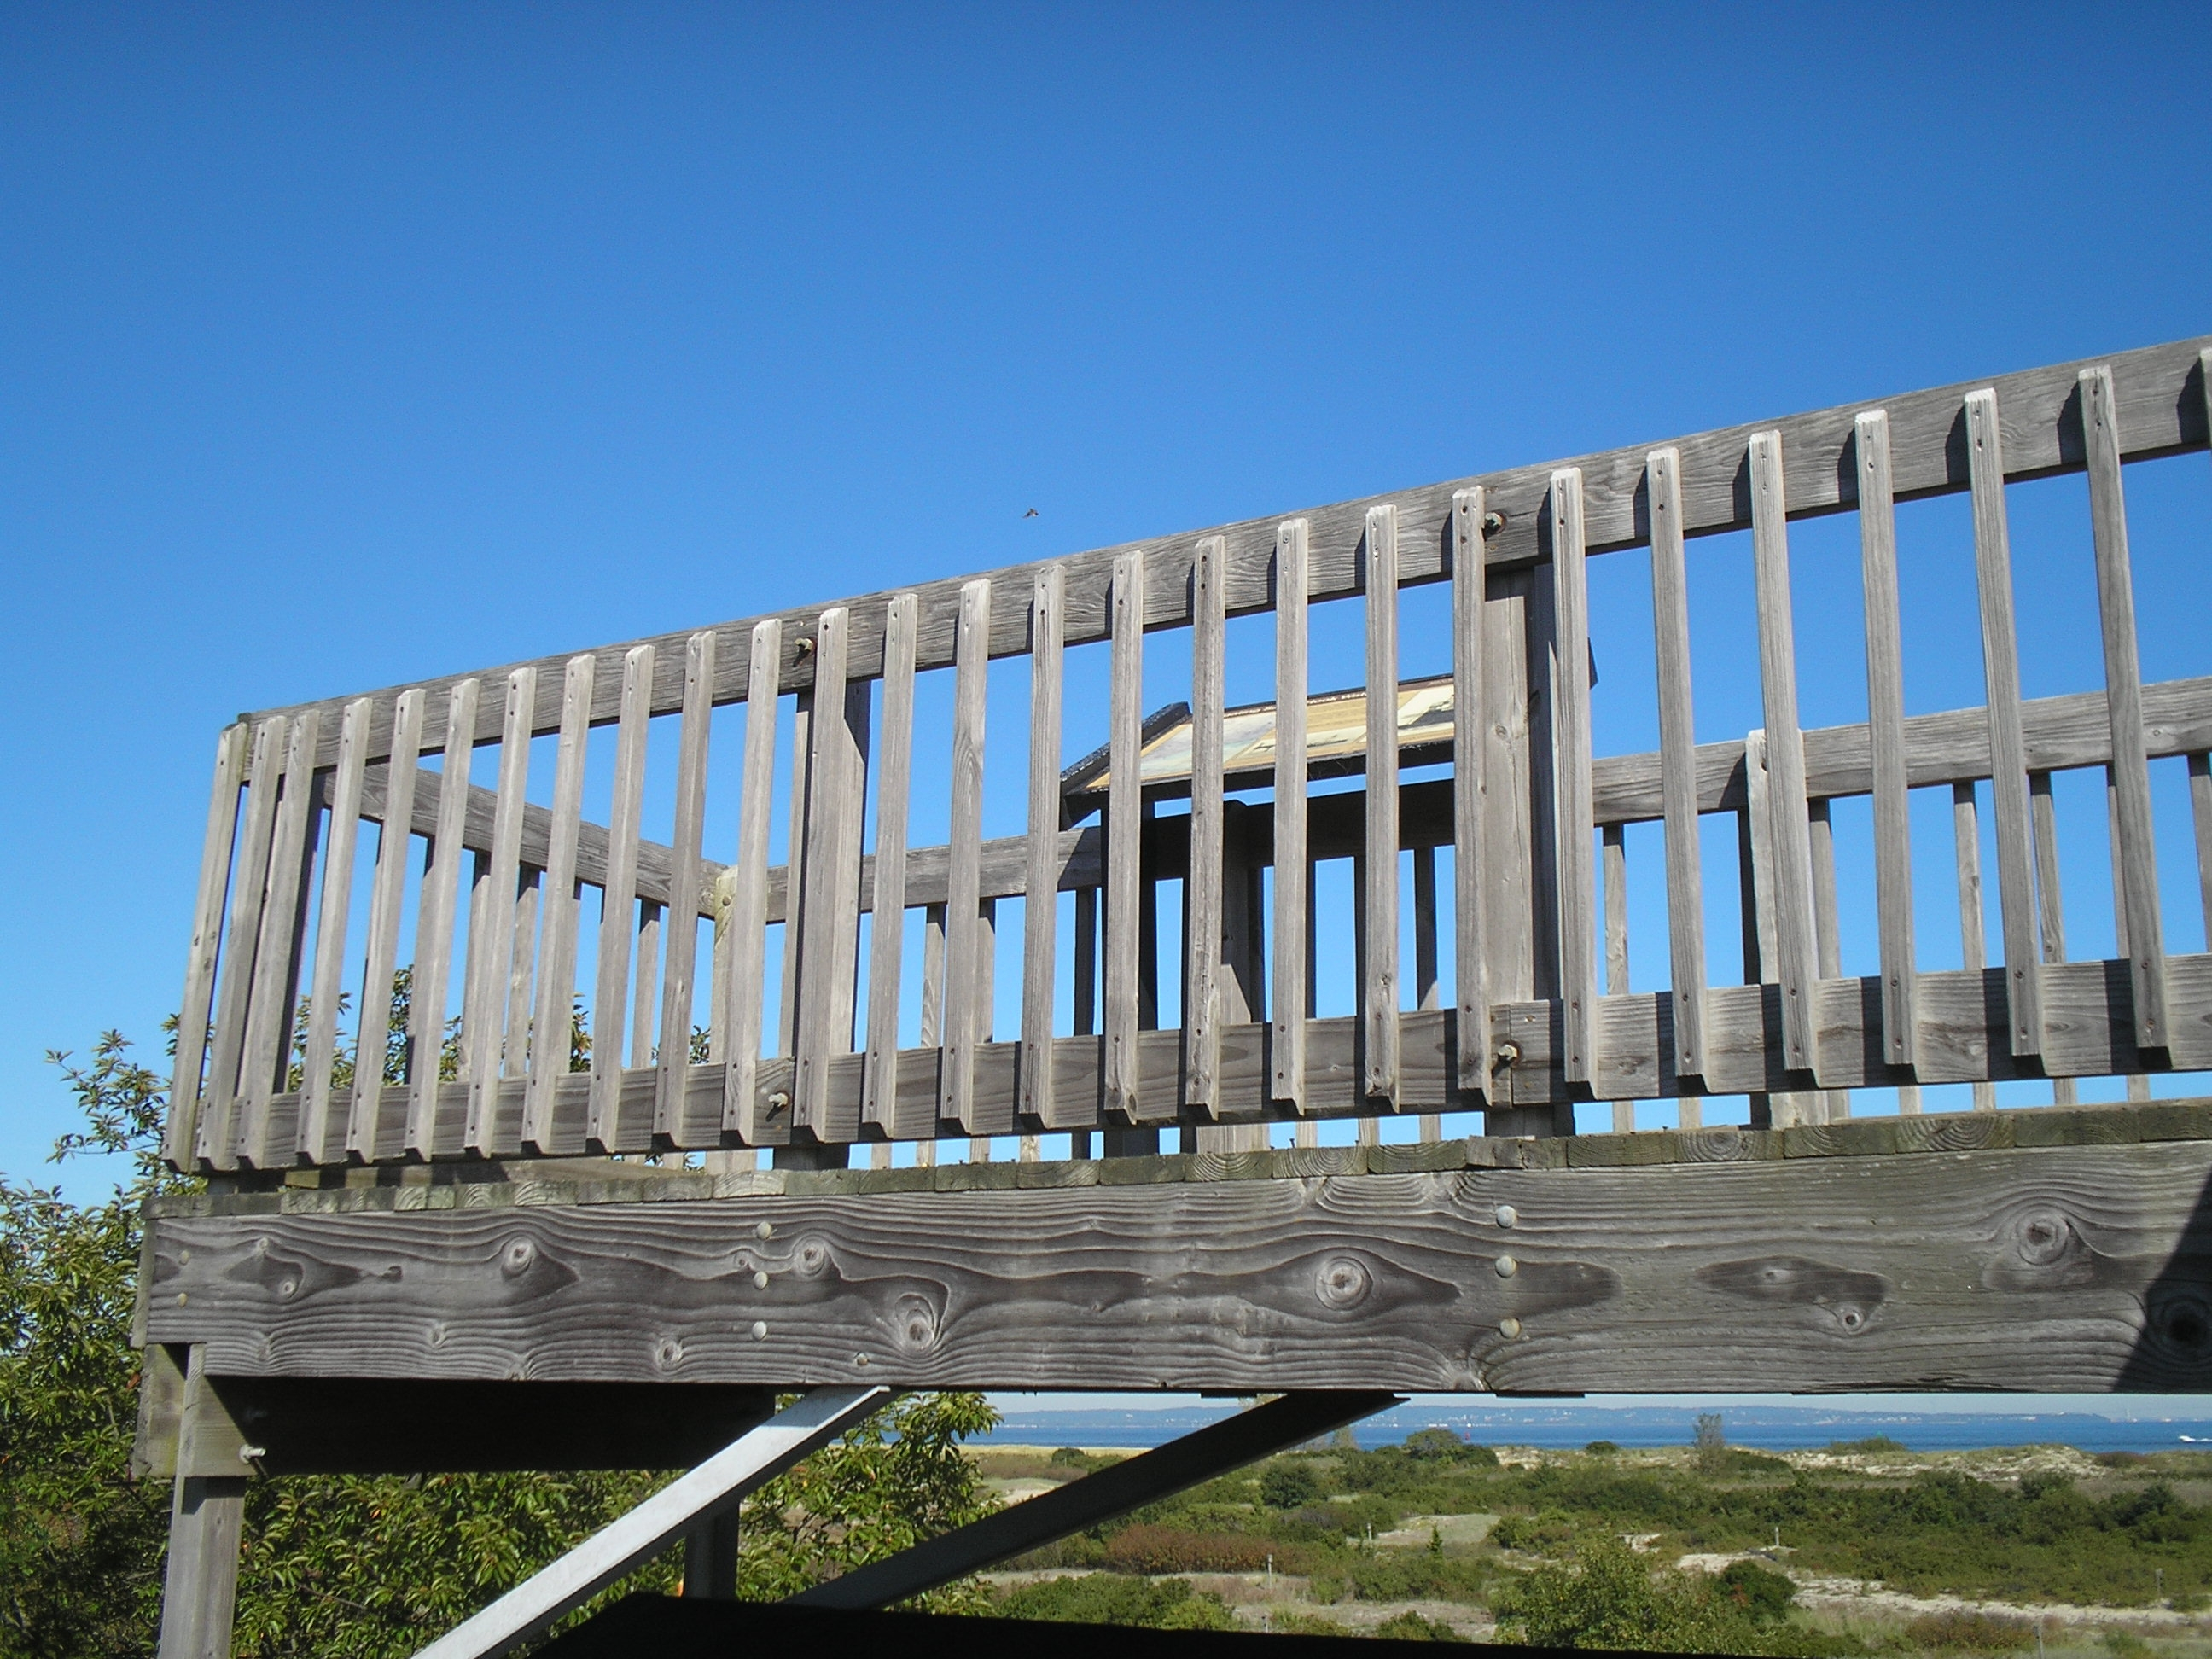 Observation Deck at Sandy Hook